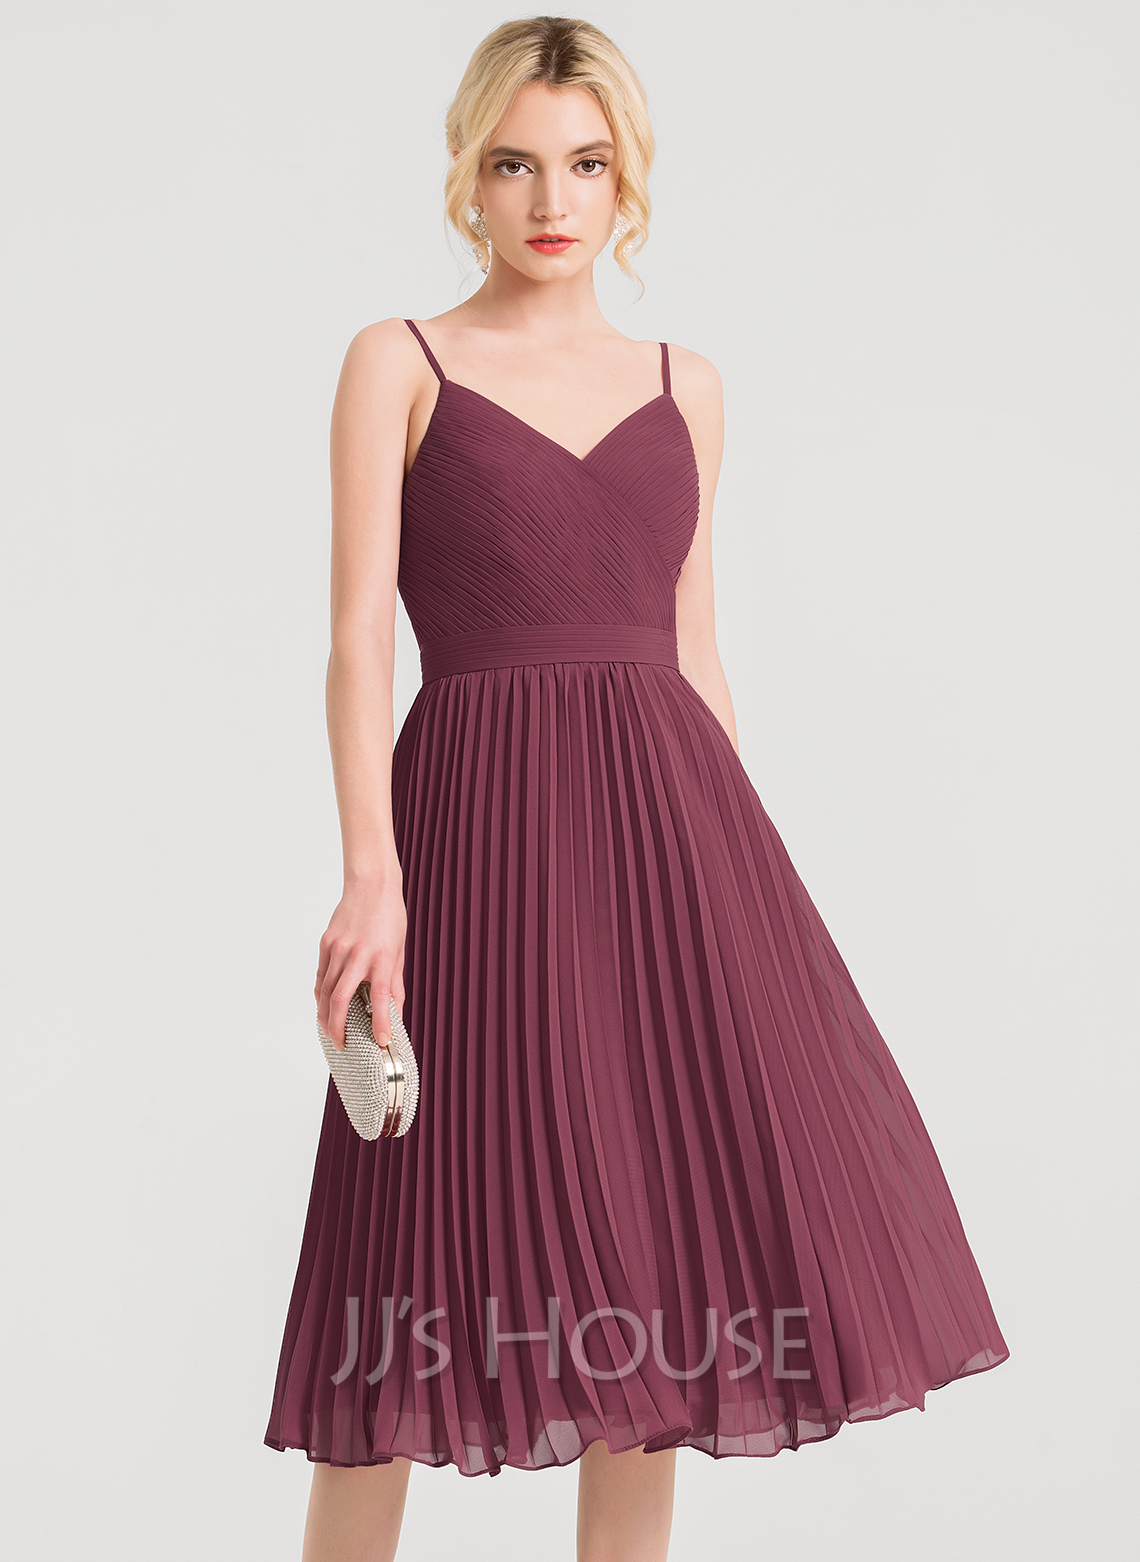 A-Line V-neck Knee-Length Chiffon Cocktail Dress With Pleated